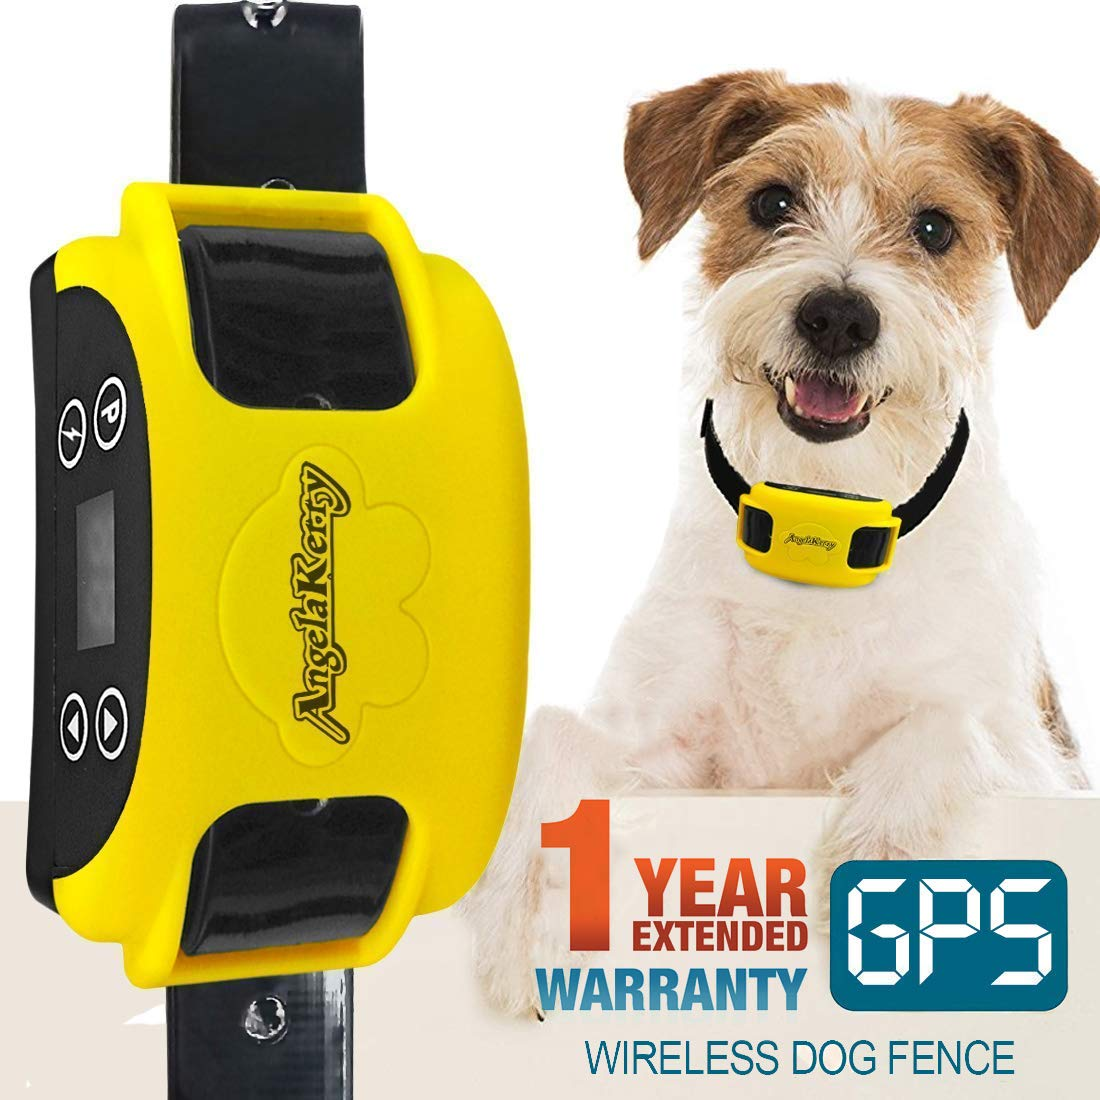 AngelaKerry Wireless Dog Fence System with GPS, Outdoor Dog Containment System Rechargeable Waterproof Collar EF851S remote for 15lbs-120lbs Dogs (1pc GPS Receiver by 1 Dog)